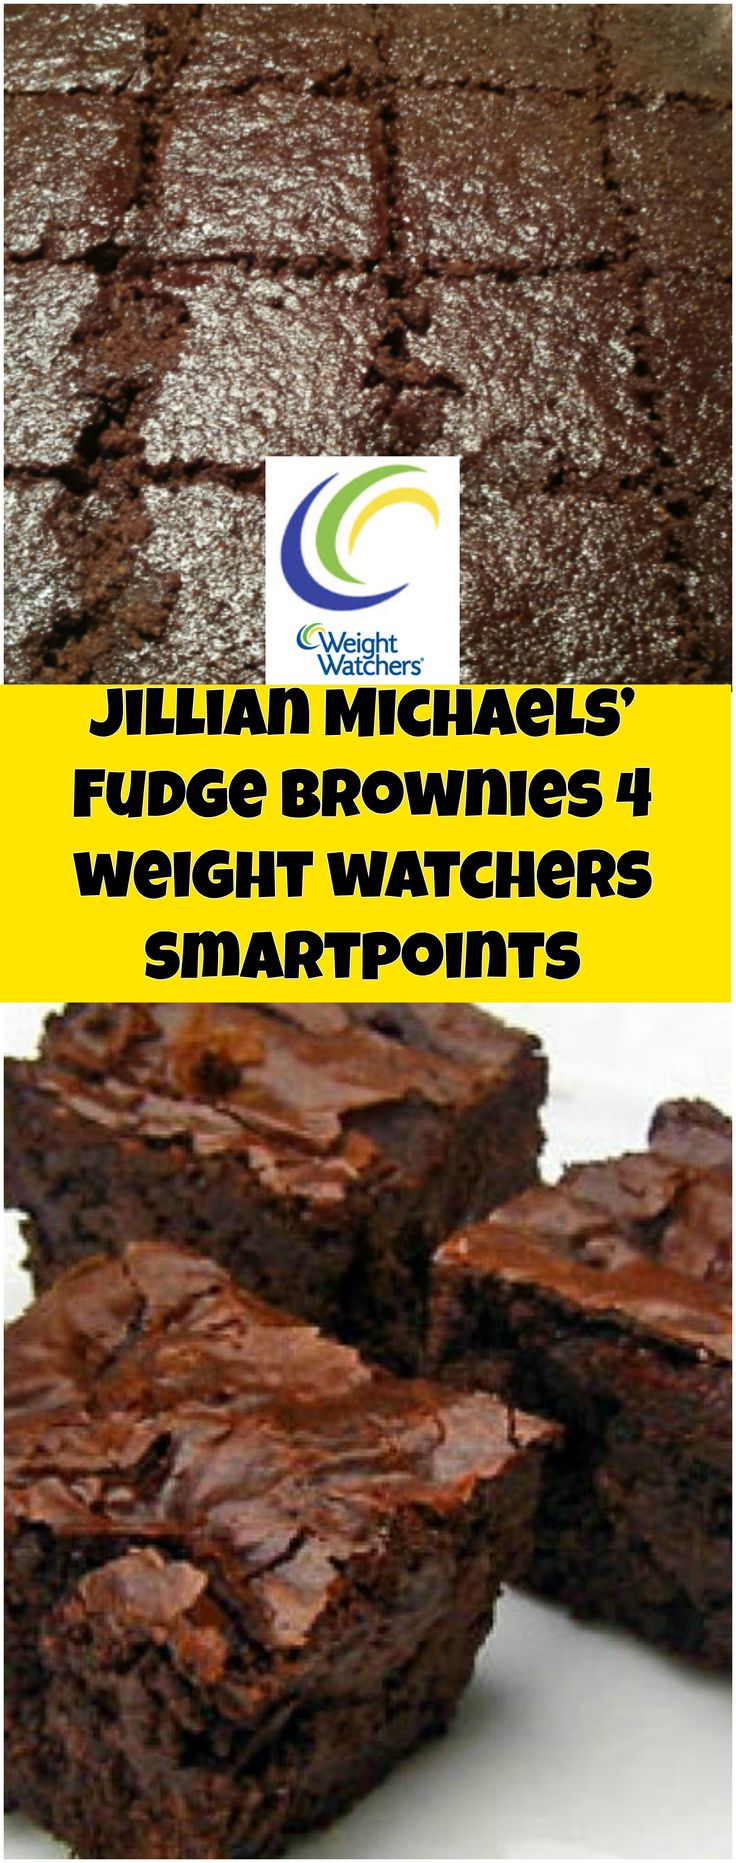 Jillian Michaels' Fudge Brownies 4 weight watchers smartpoints